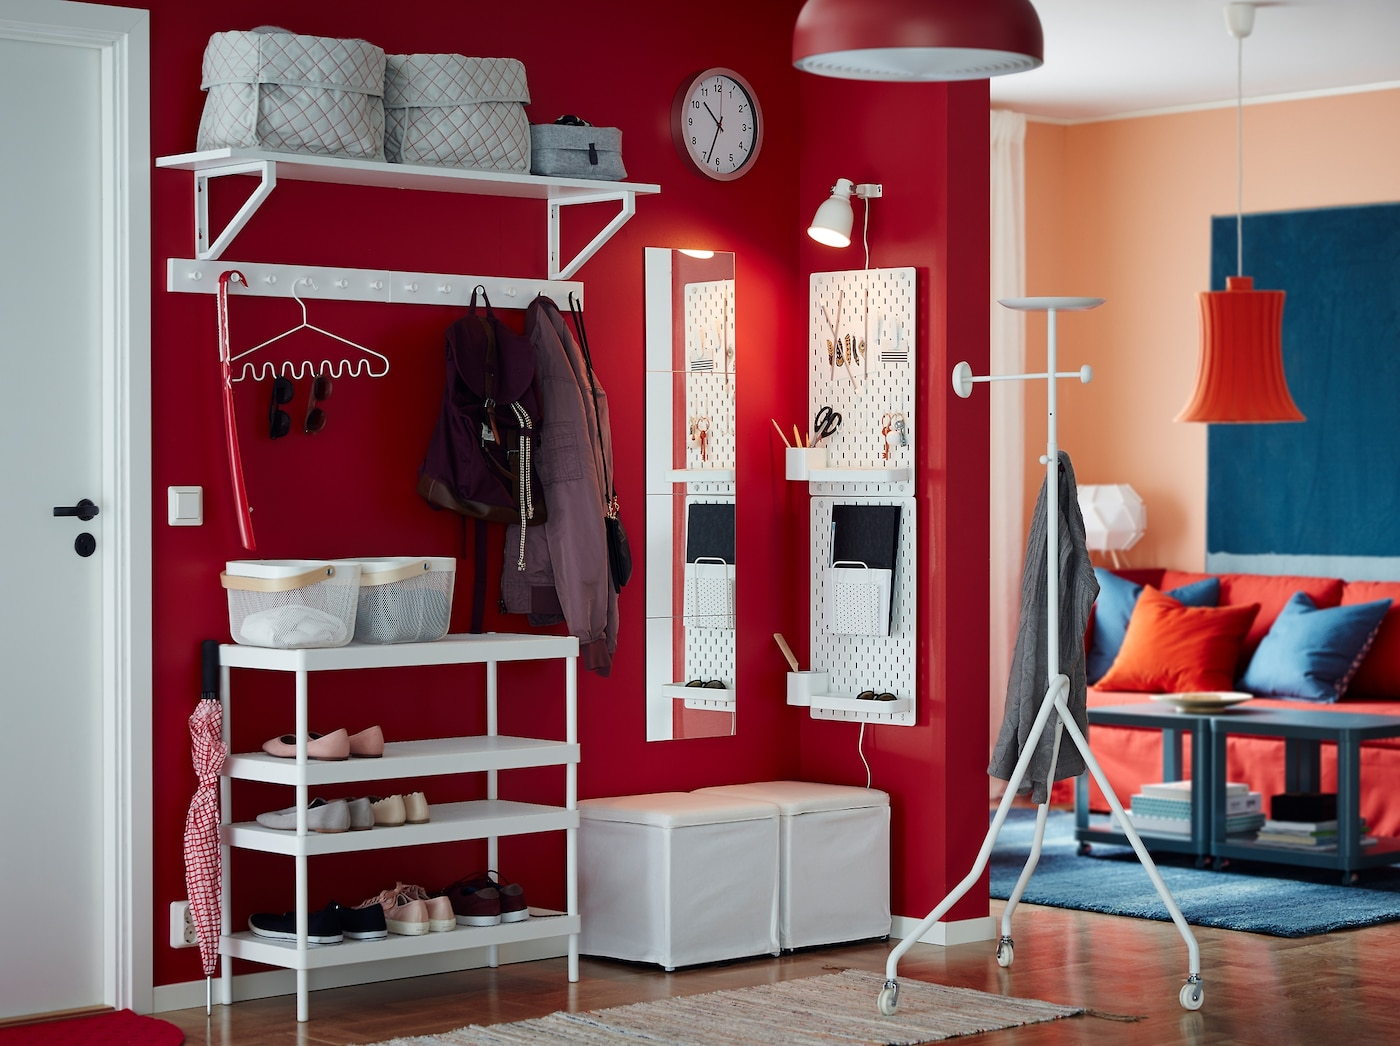 Combine the stackable MACKAPÄR shoe rack with a white wall shelf, footstool and peg board to provide a home for shoes, coats and smaller items in a small, open hallway. A red wall adds an extra warm welcome.